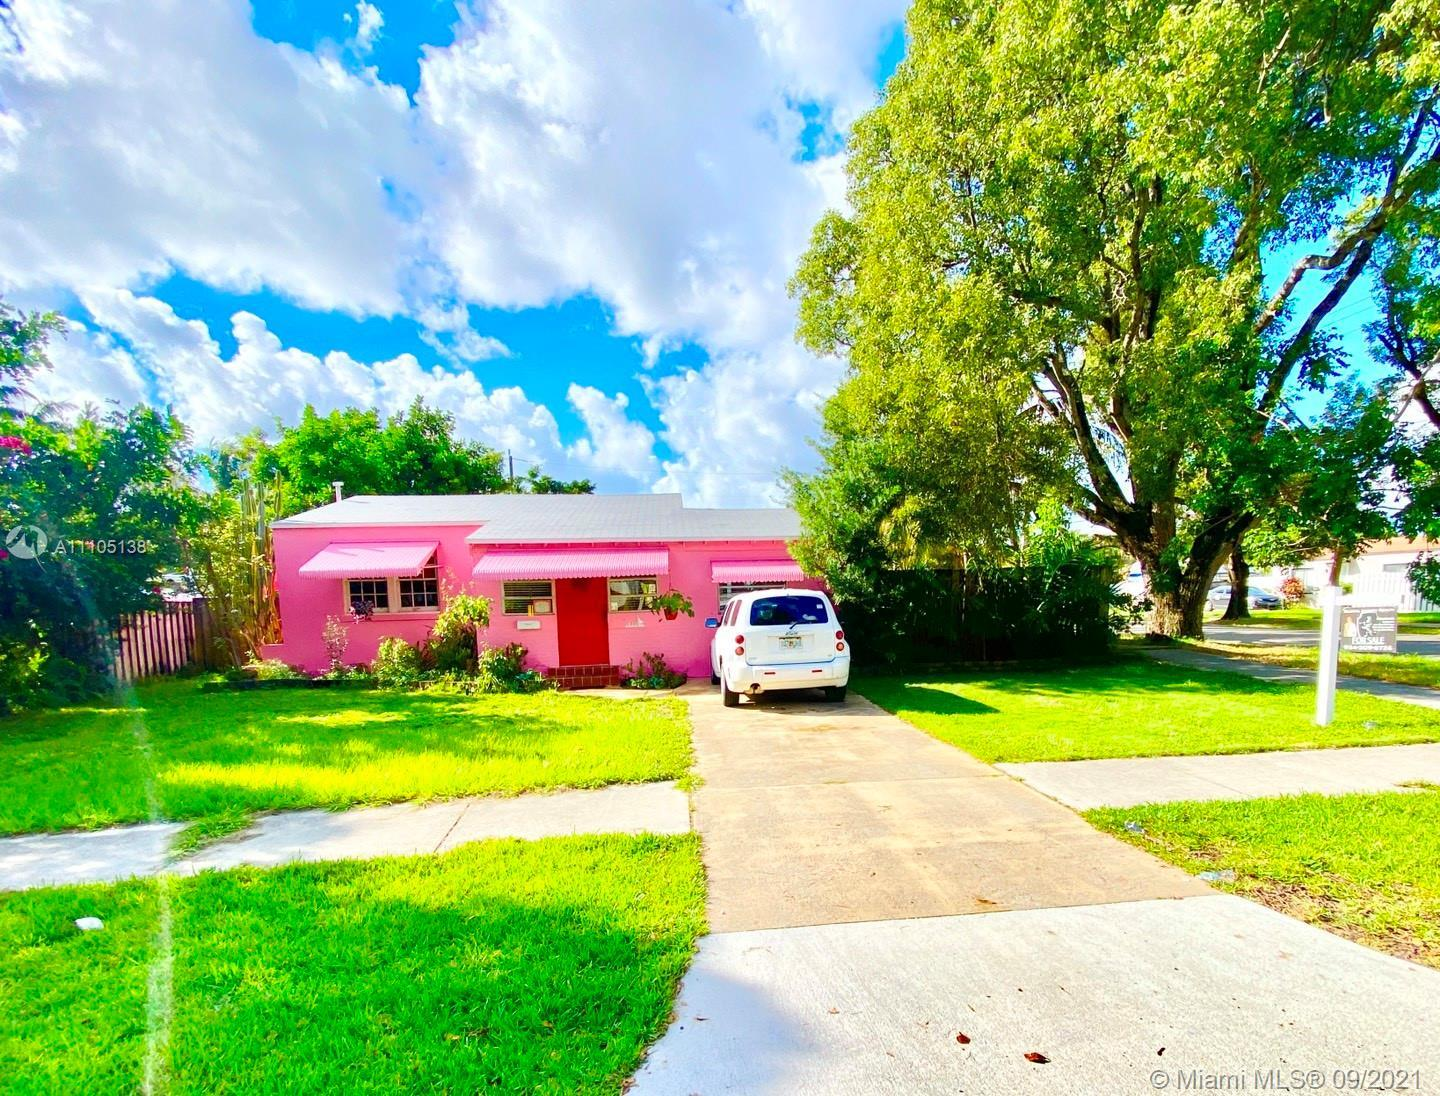 Come and see this centrally located home in East Hollywood, just minutes away from everything! This